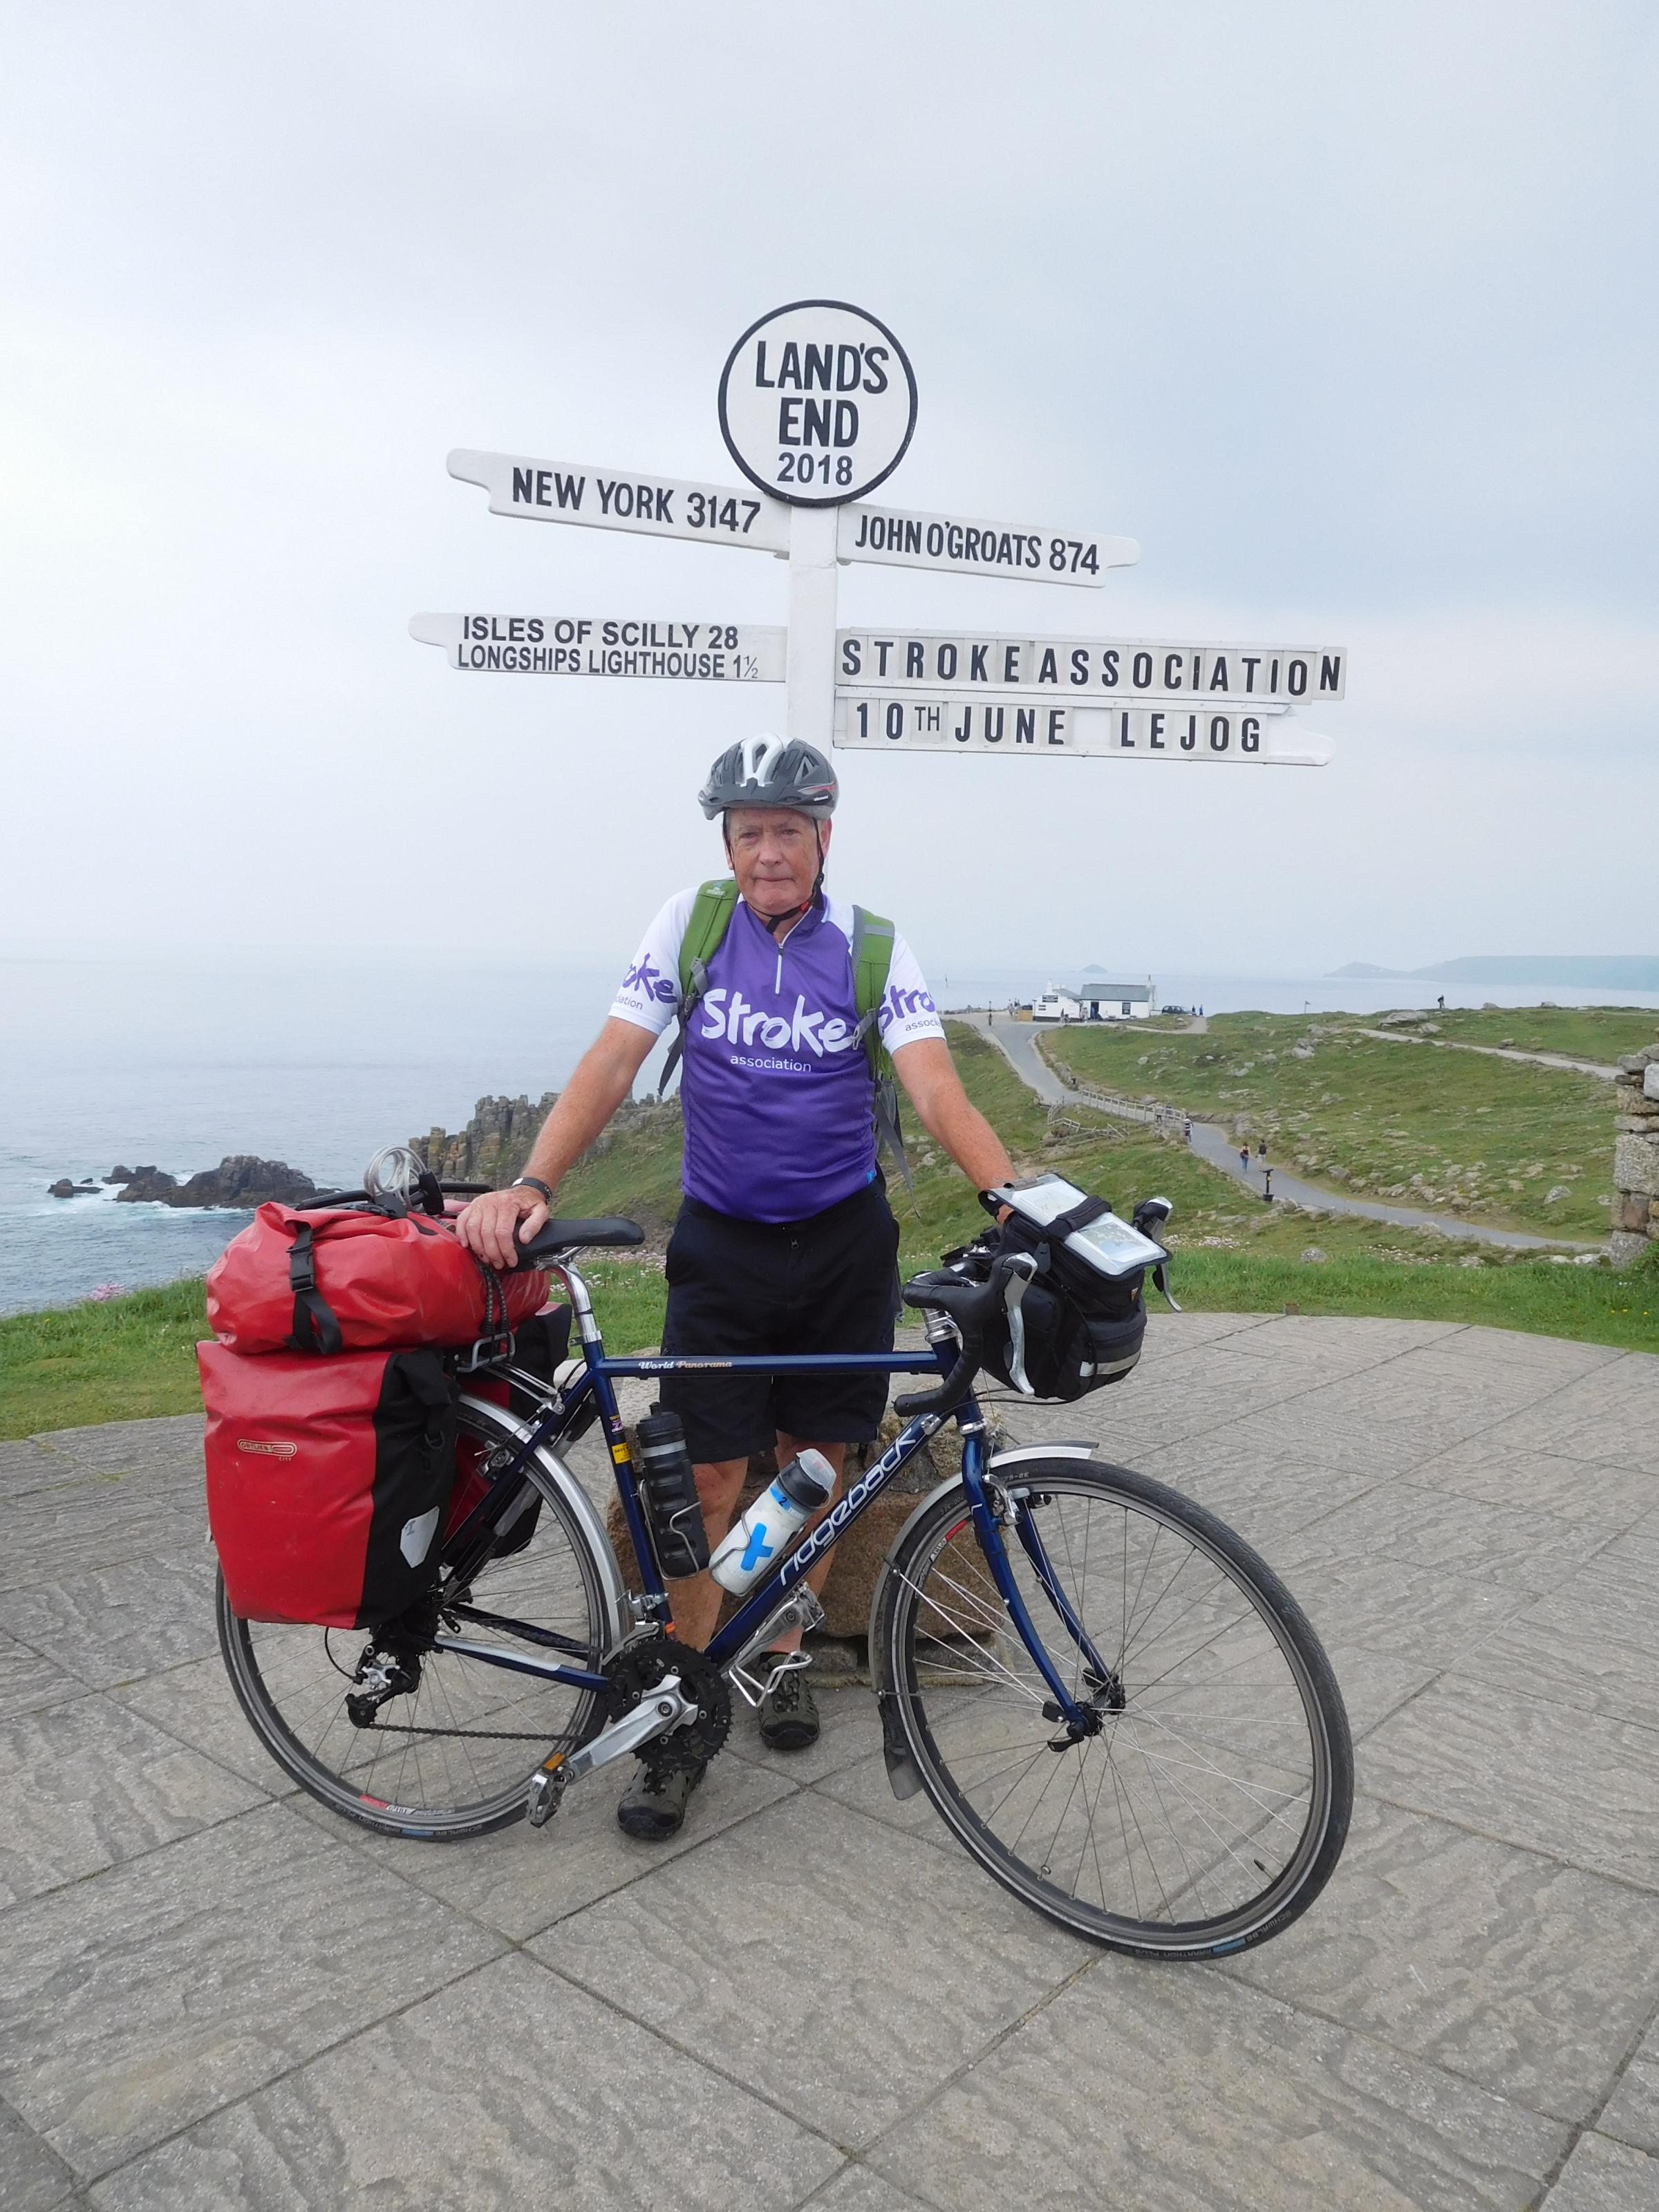 Mike Harrington at Land's End